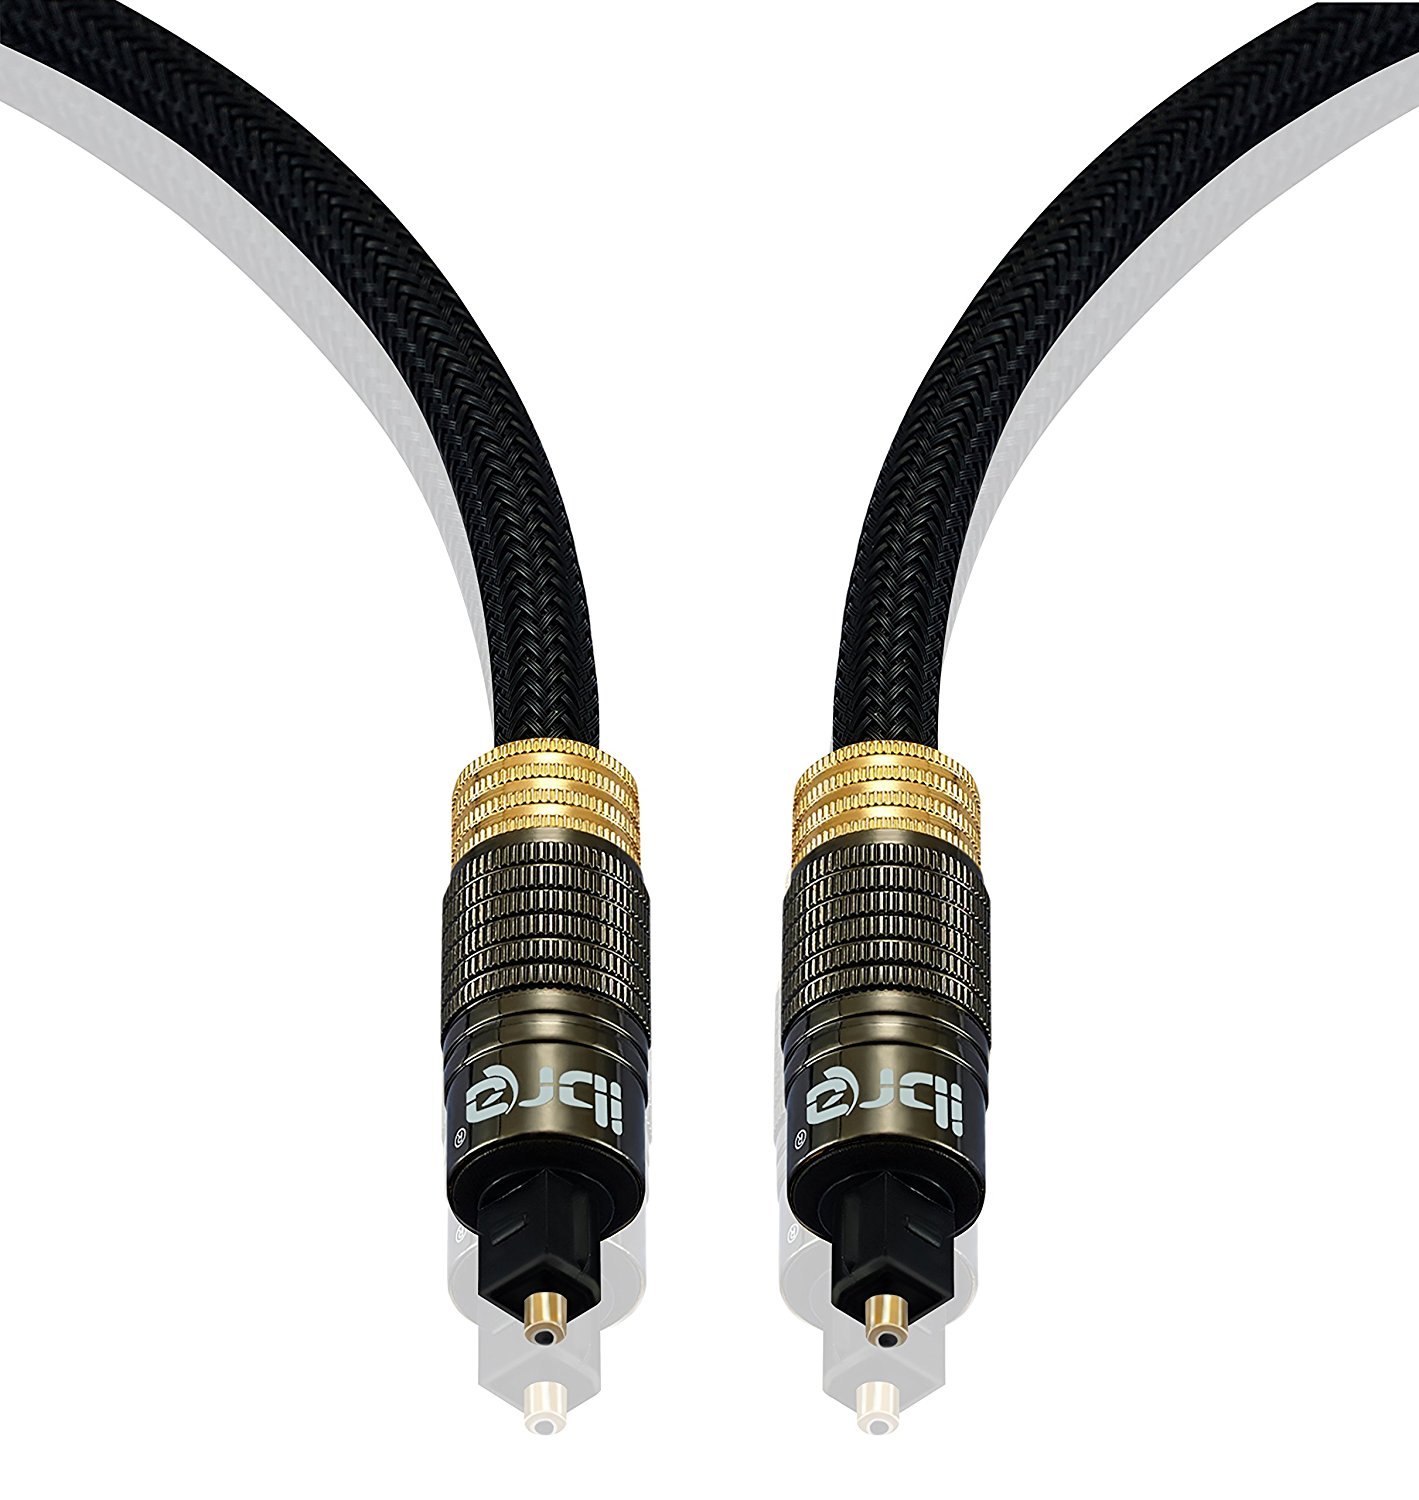 IBRA Muzil Gold 10M - Digital Optical Cable | Toslink / Audio Cable | Fibre Optic Cable | Suitable for PS3, Sky, Sky HD, LCD, LED, Plasma, Blu-ray, AV Amps